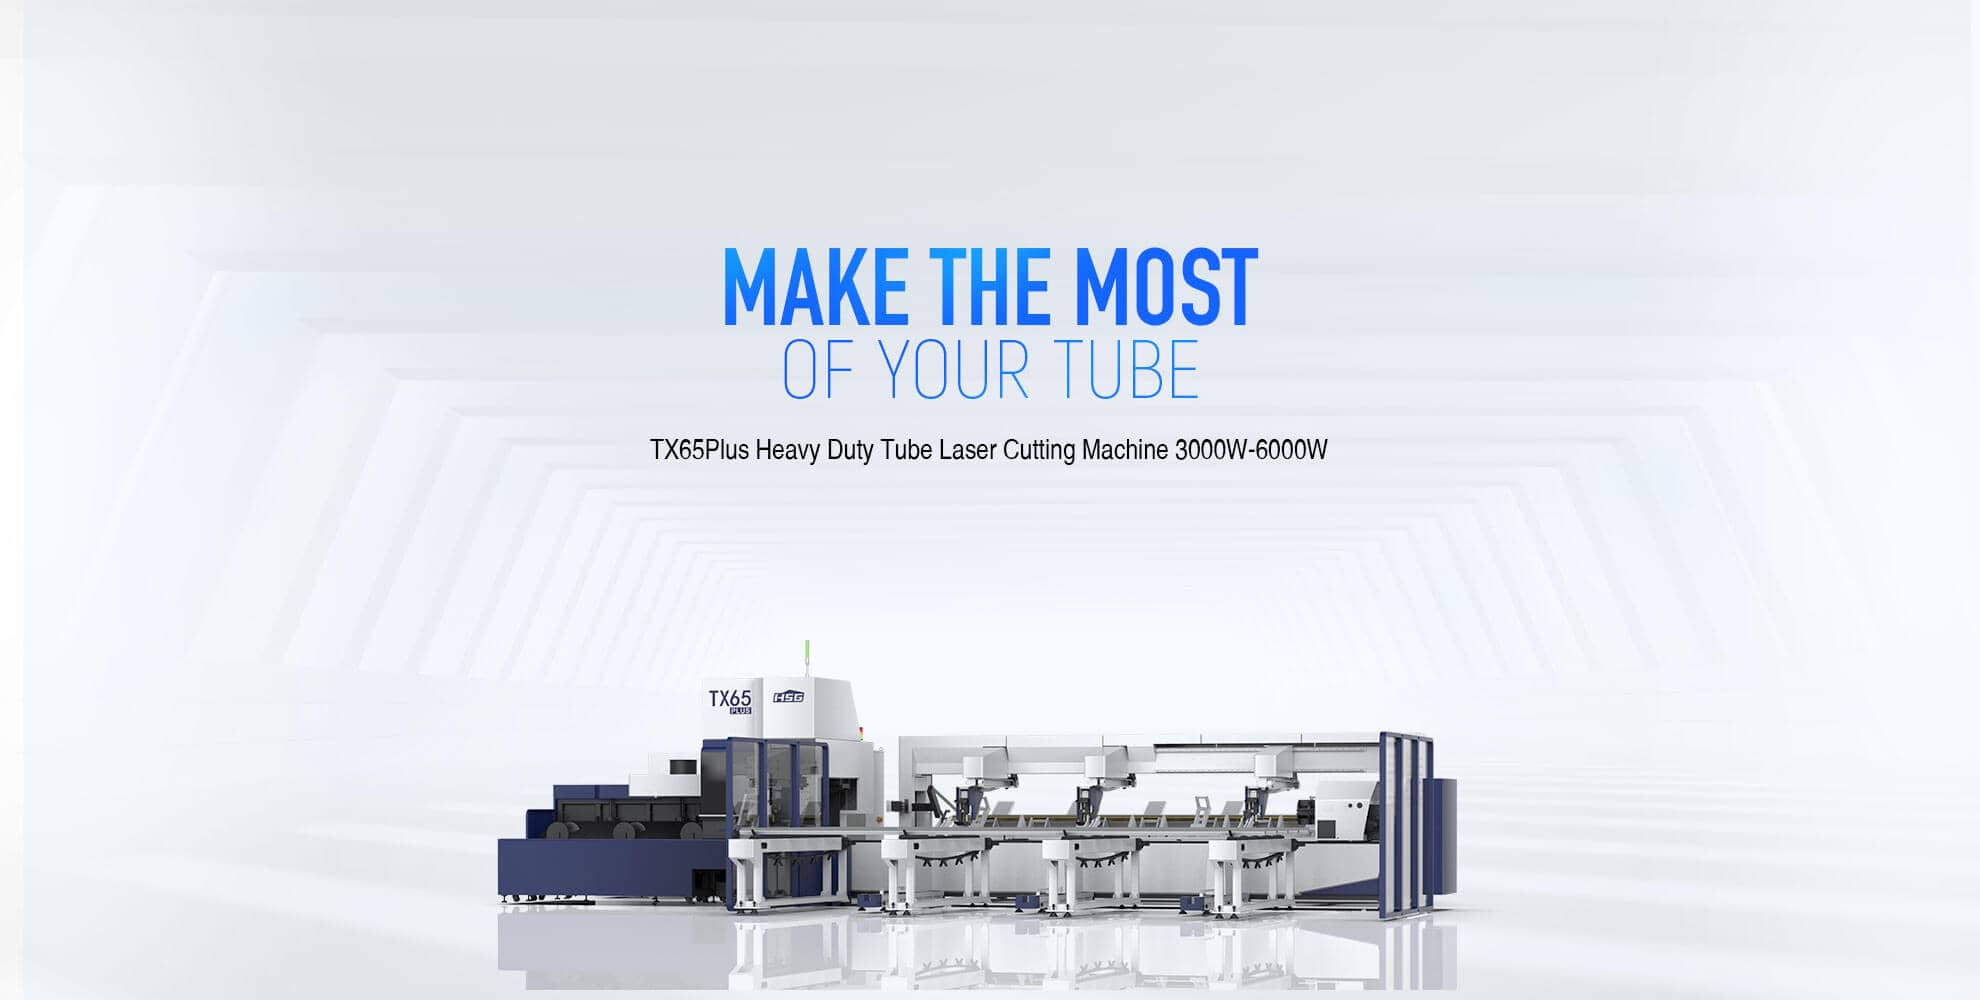 TX65Plus Series Heavy Duty Tube Laser Cutting Machine